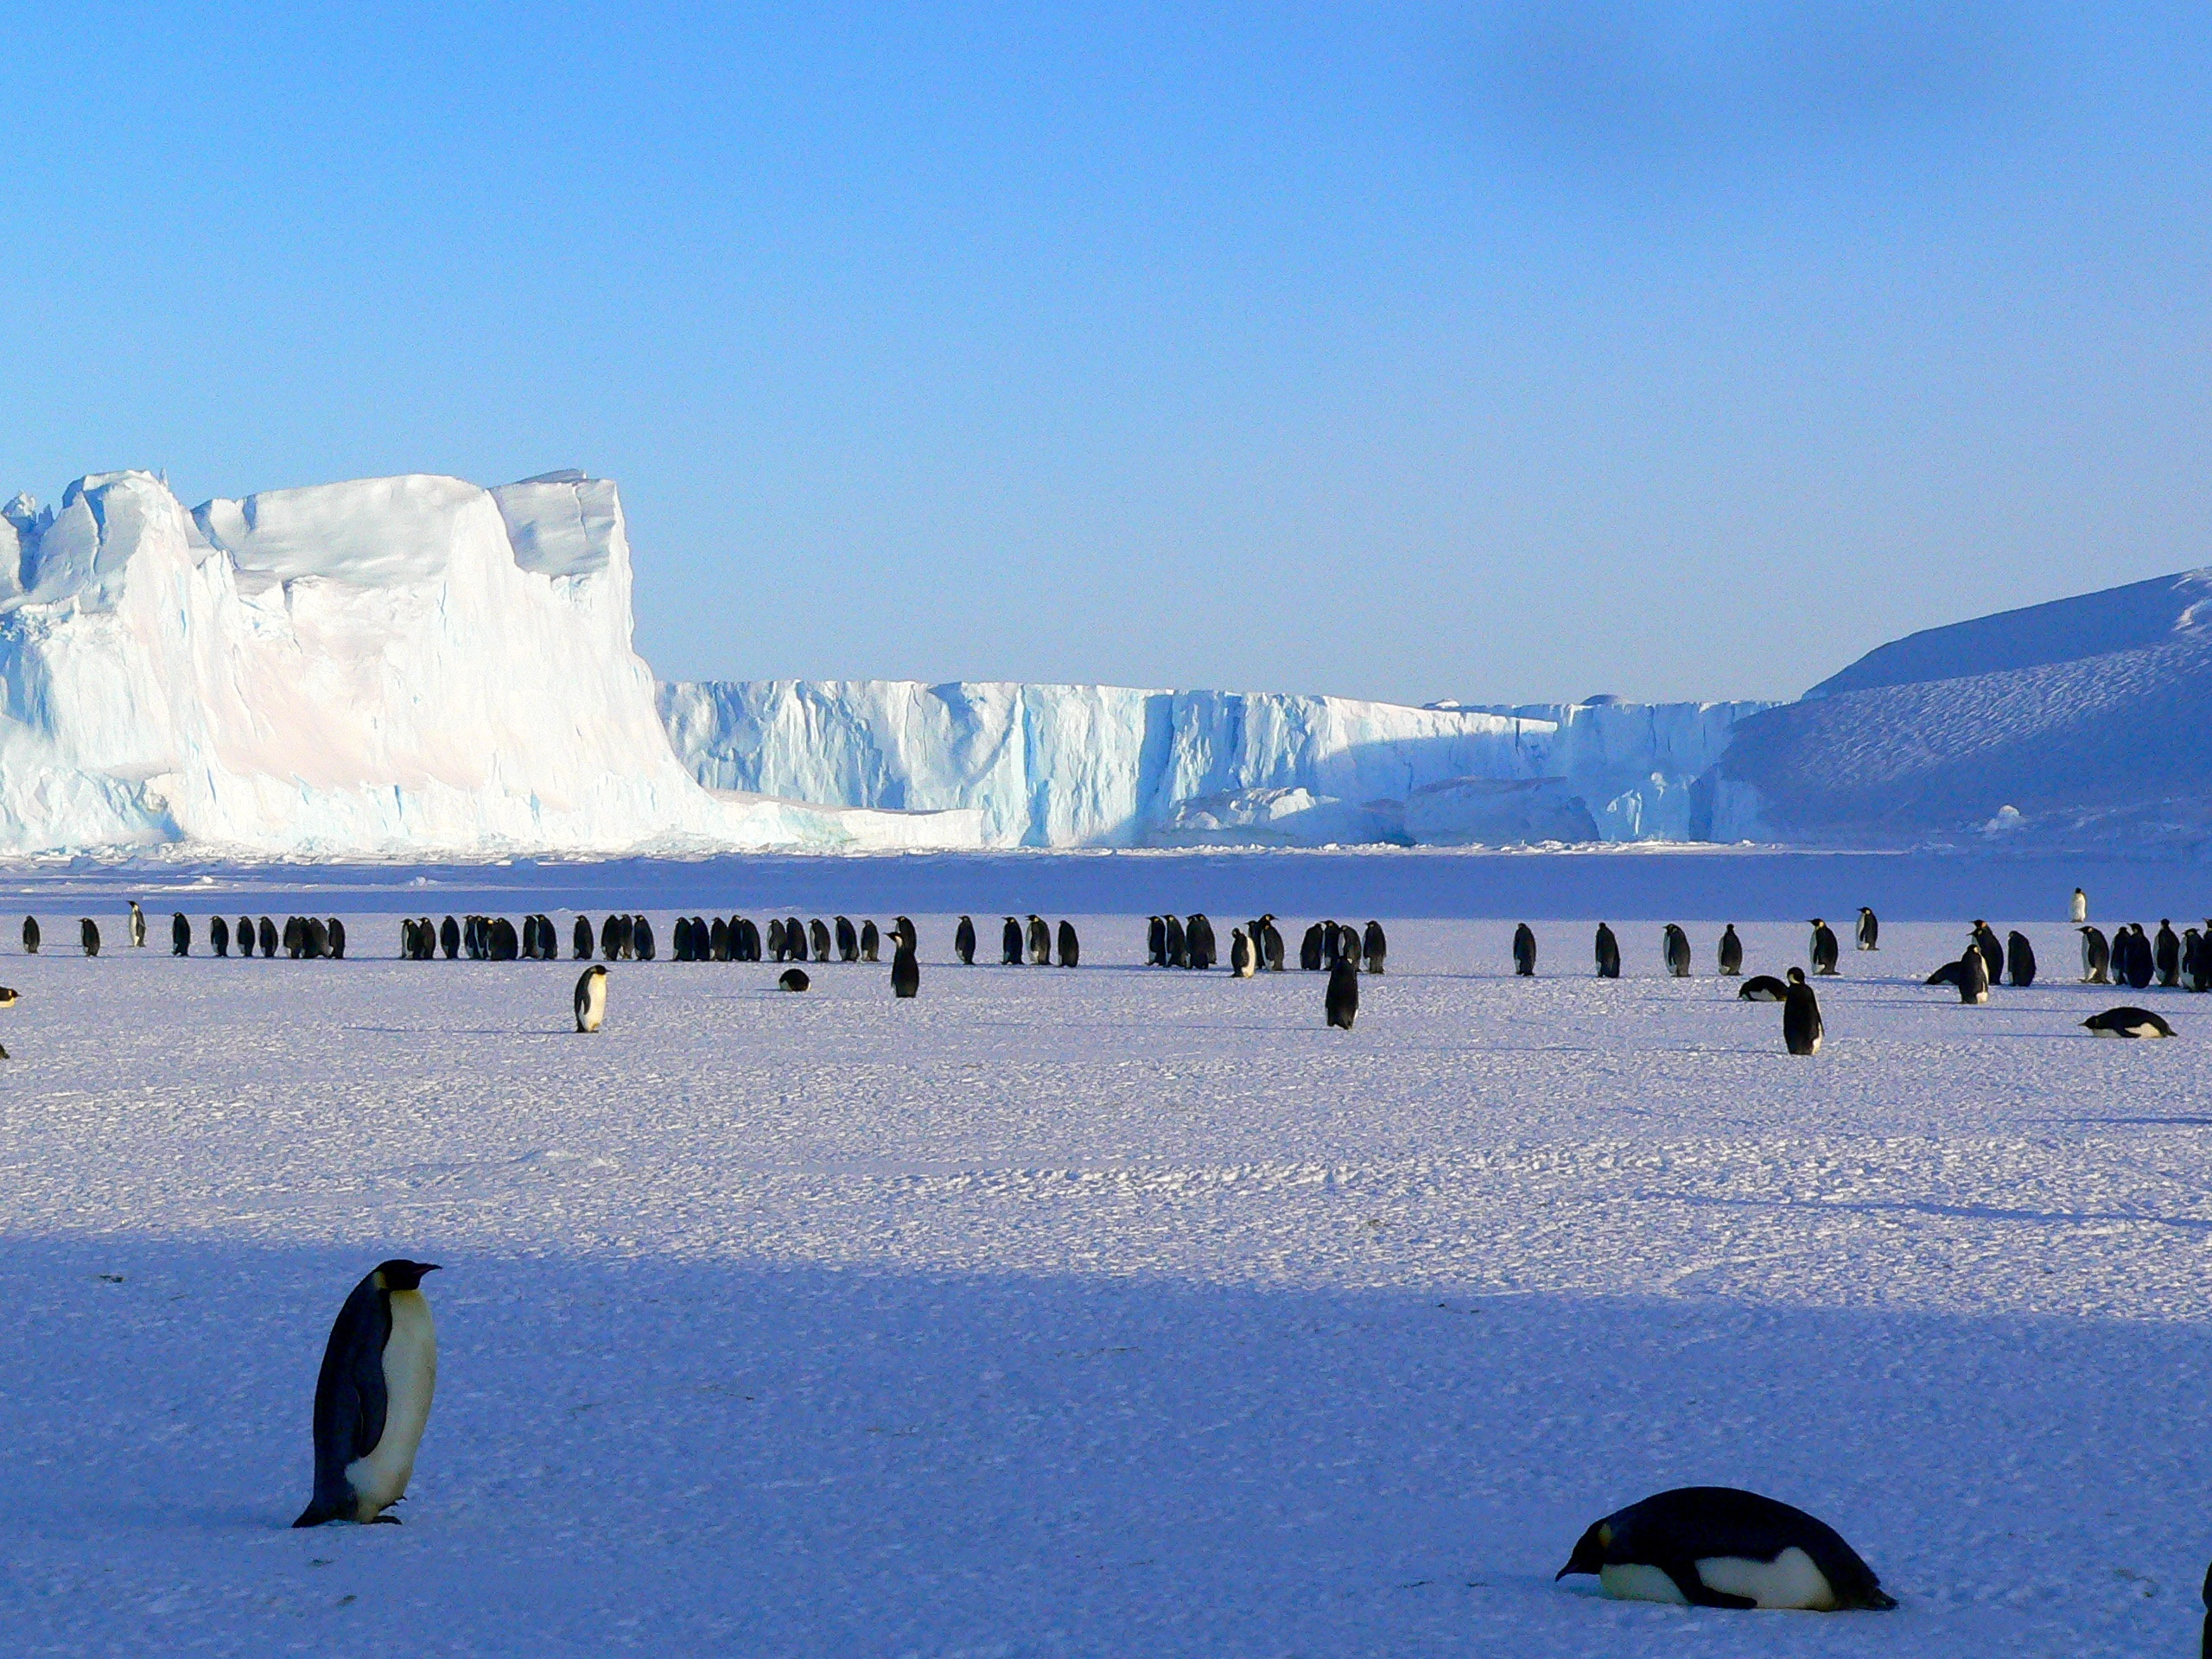 137804 download wallpaper Animals, Pinguins, Ice, Snow, Ice Floes, Antarctica screensavers and pictures for free